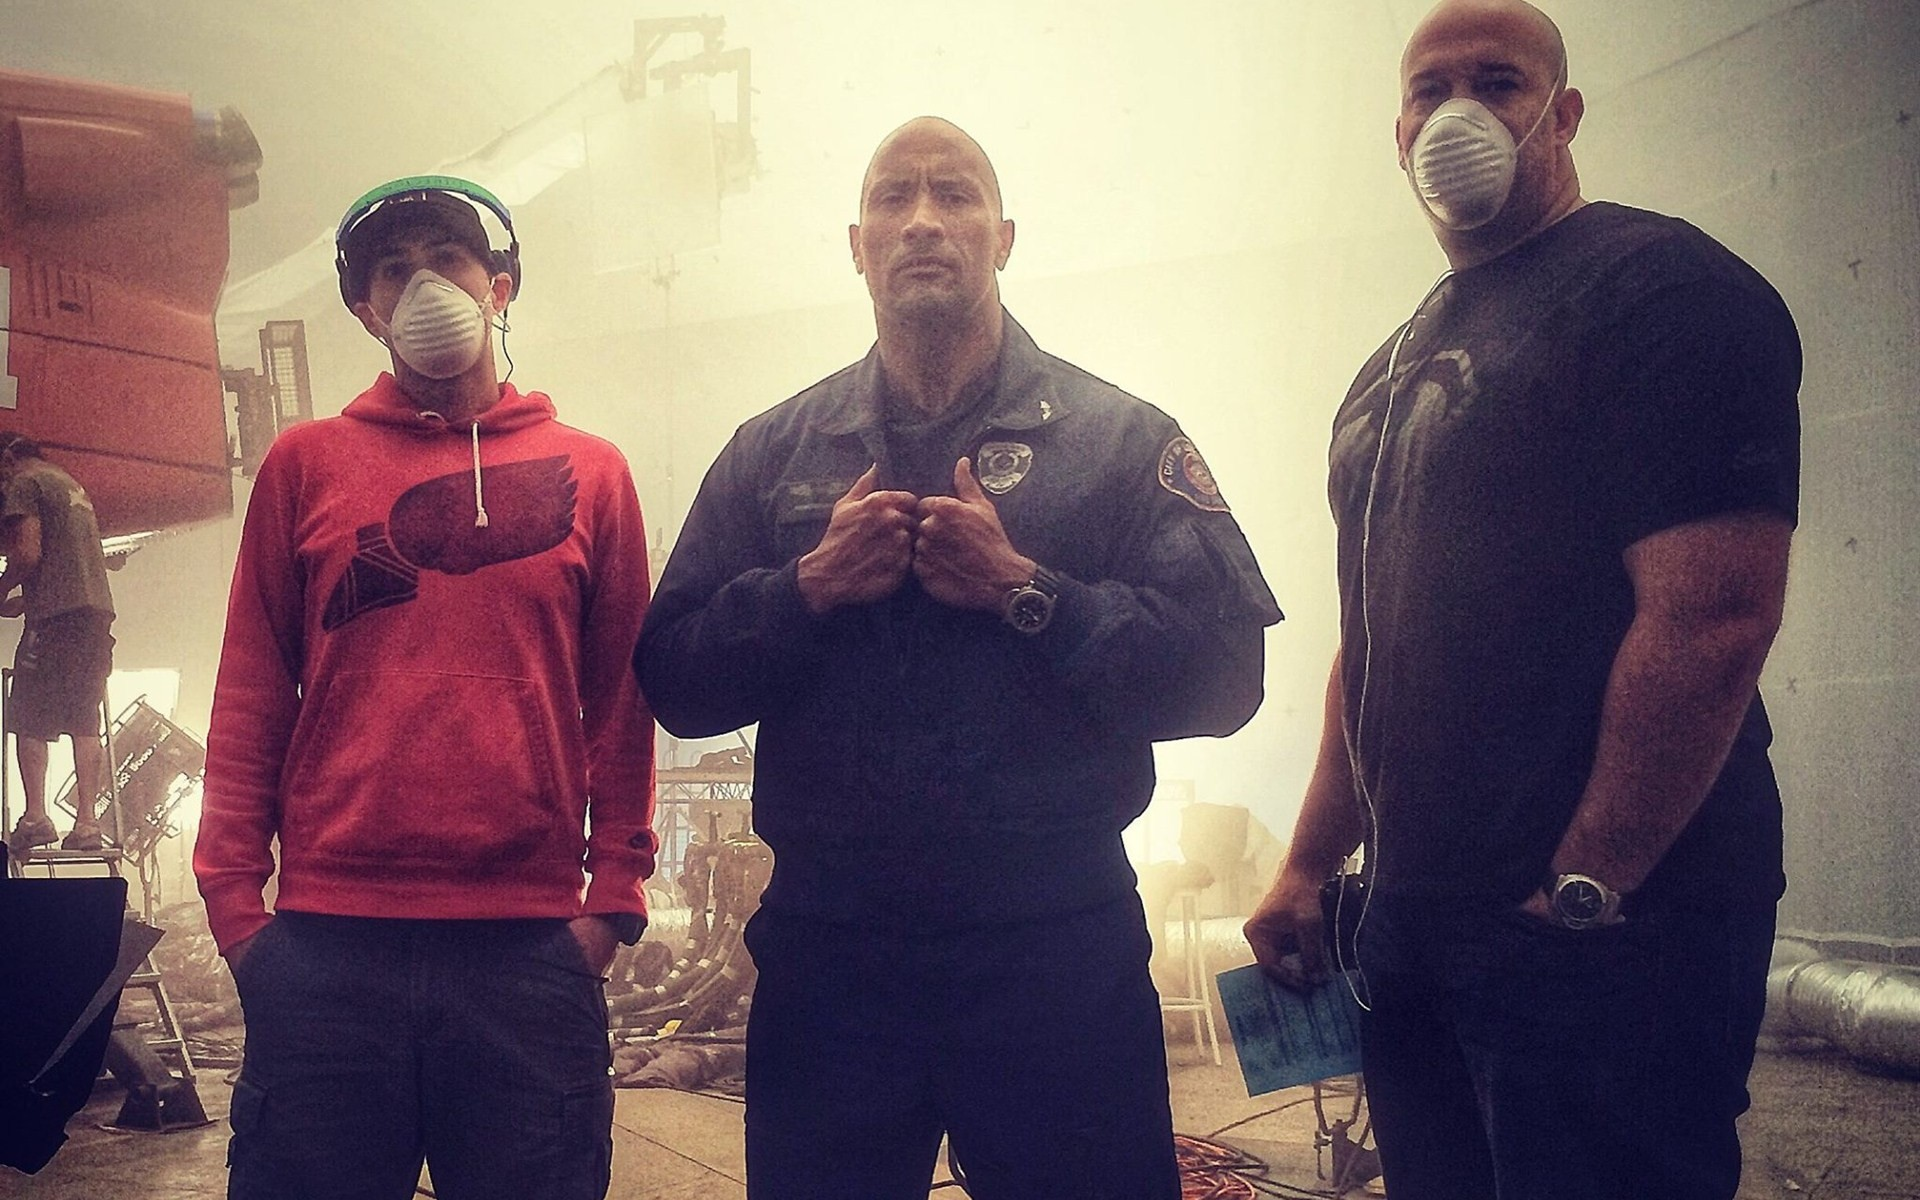 san andreas 2015 movie wallpapers hd images pictures - all hd wallpapers